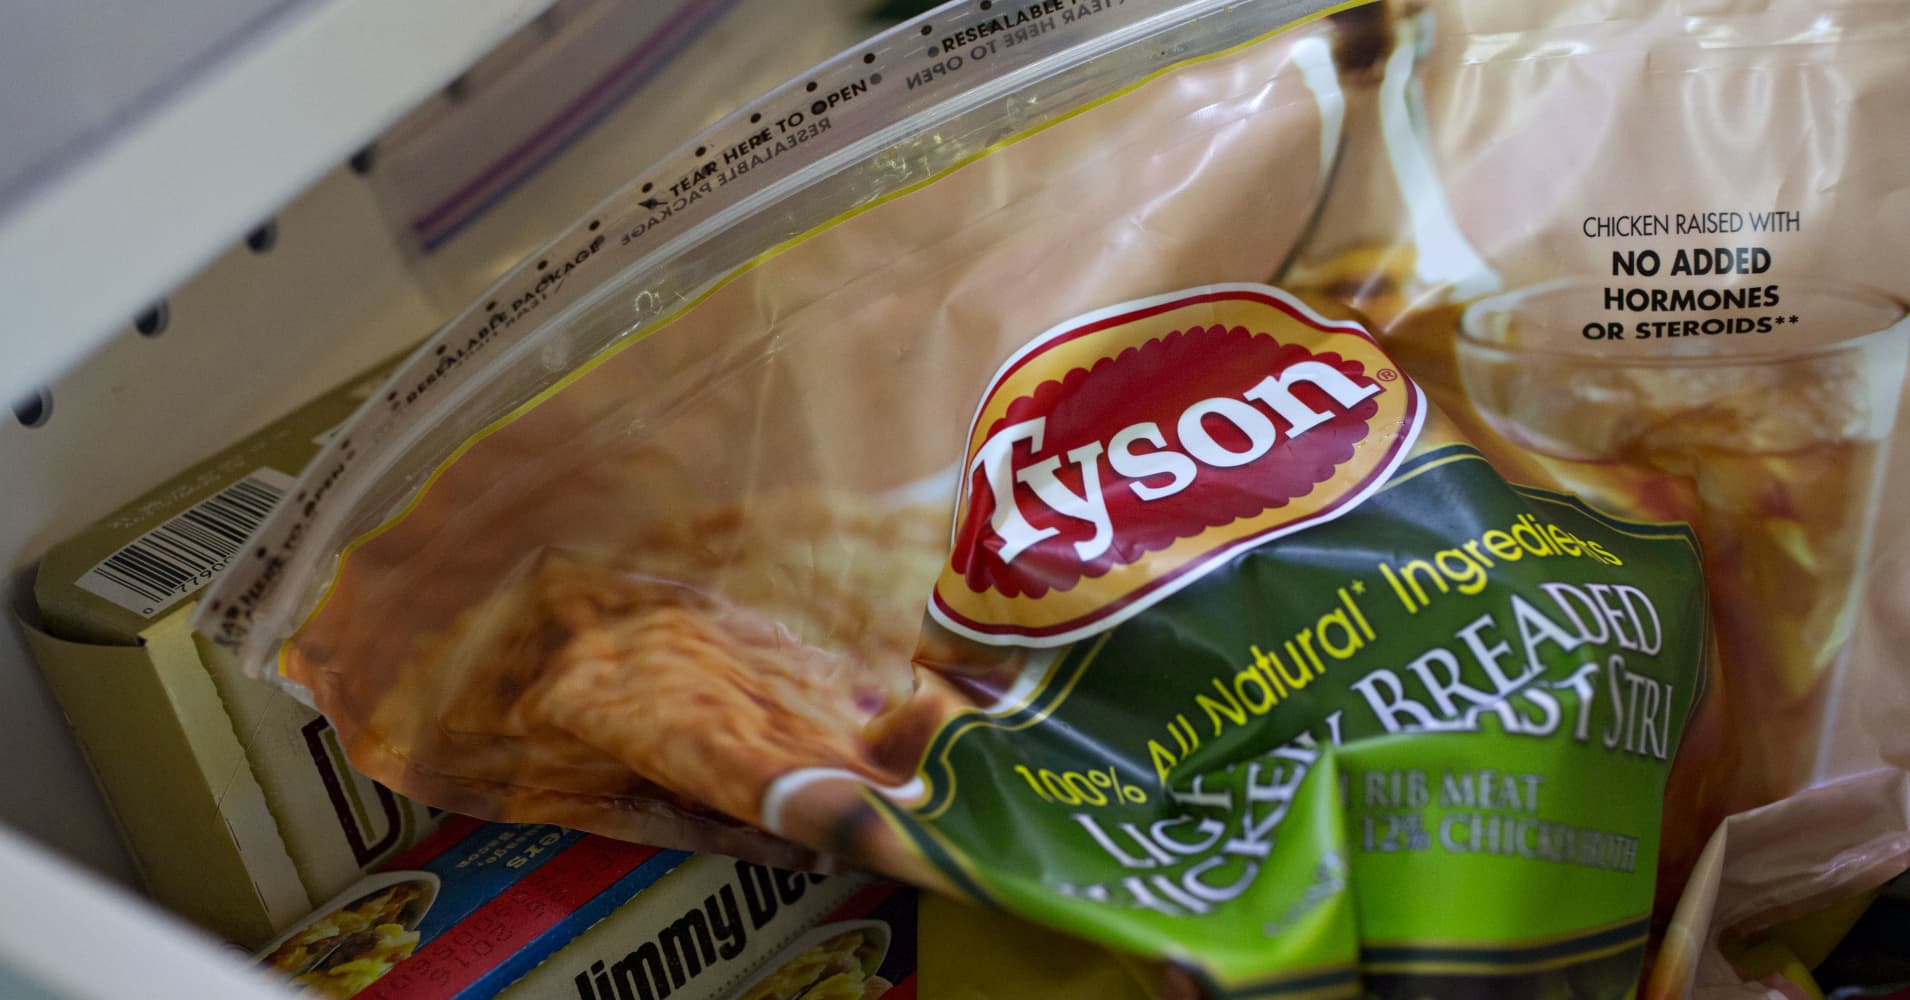 Jimmy Dean parent Tyson Foods has held talks to buy Foster Farms for $2 billion